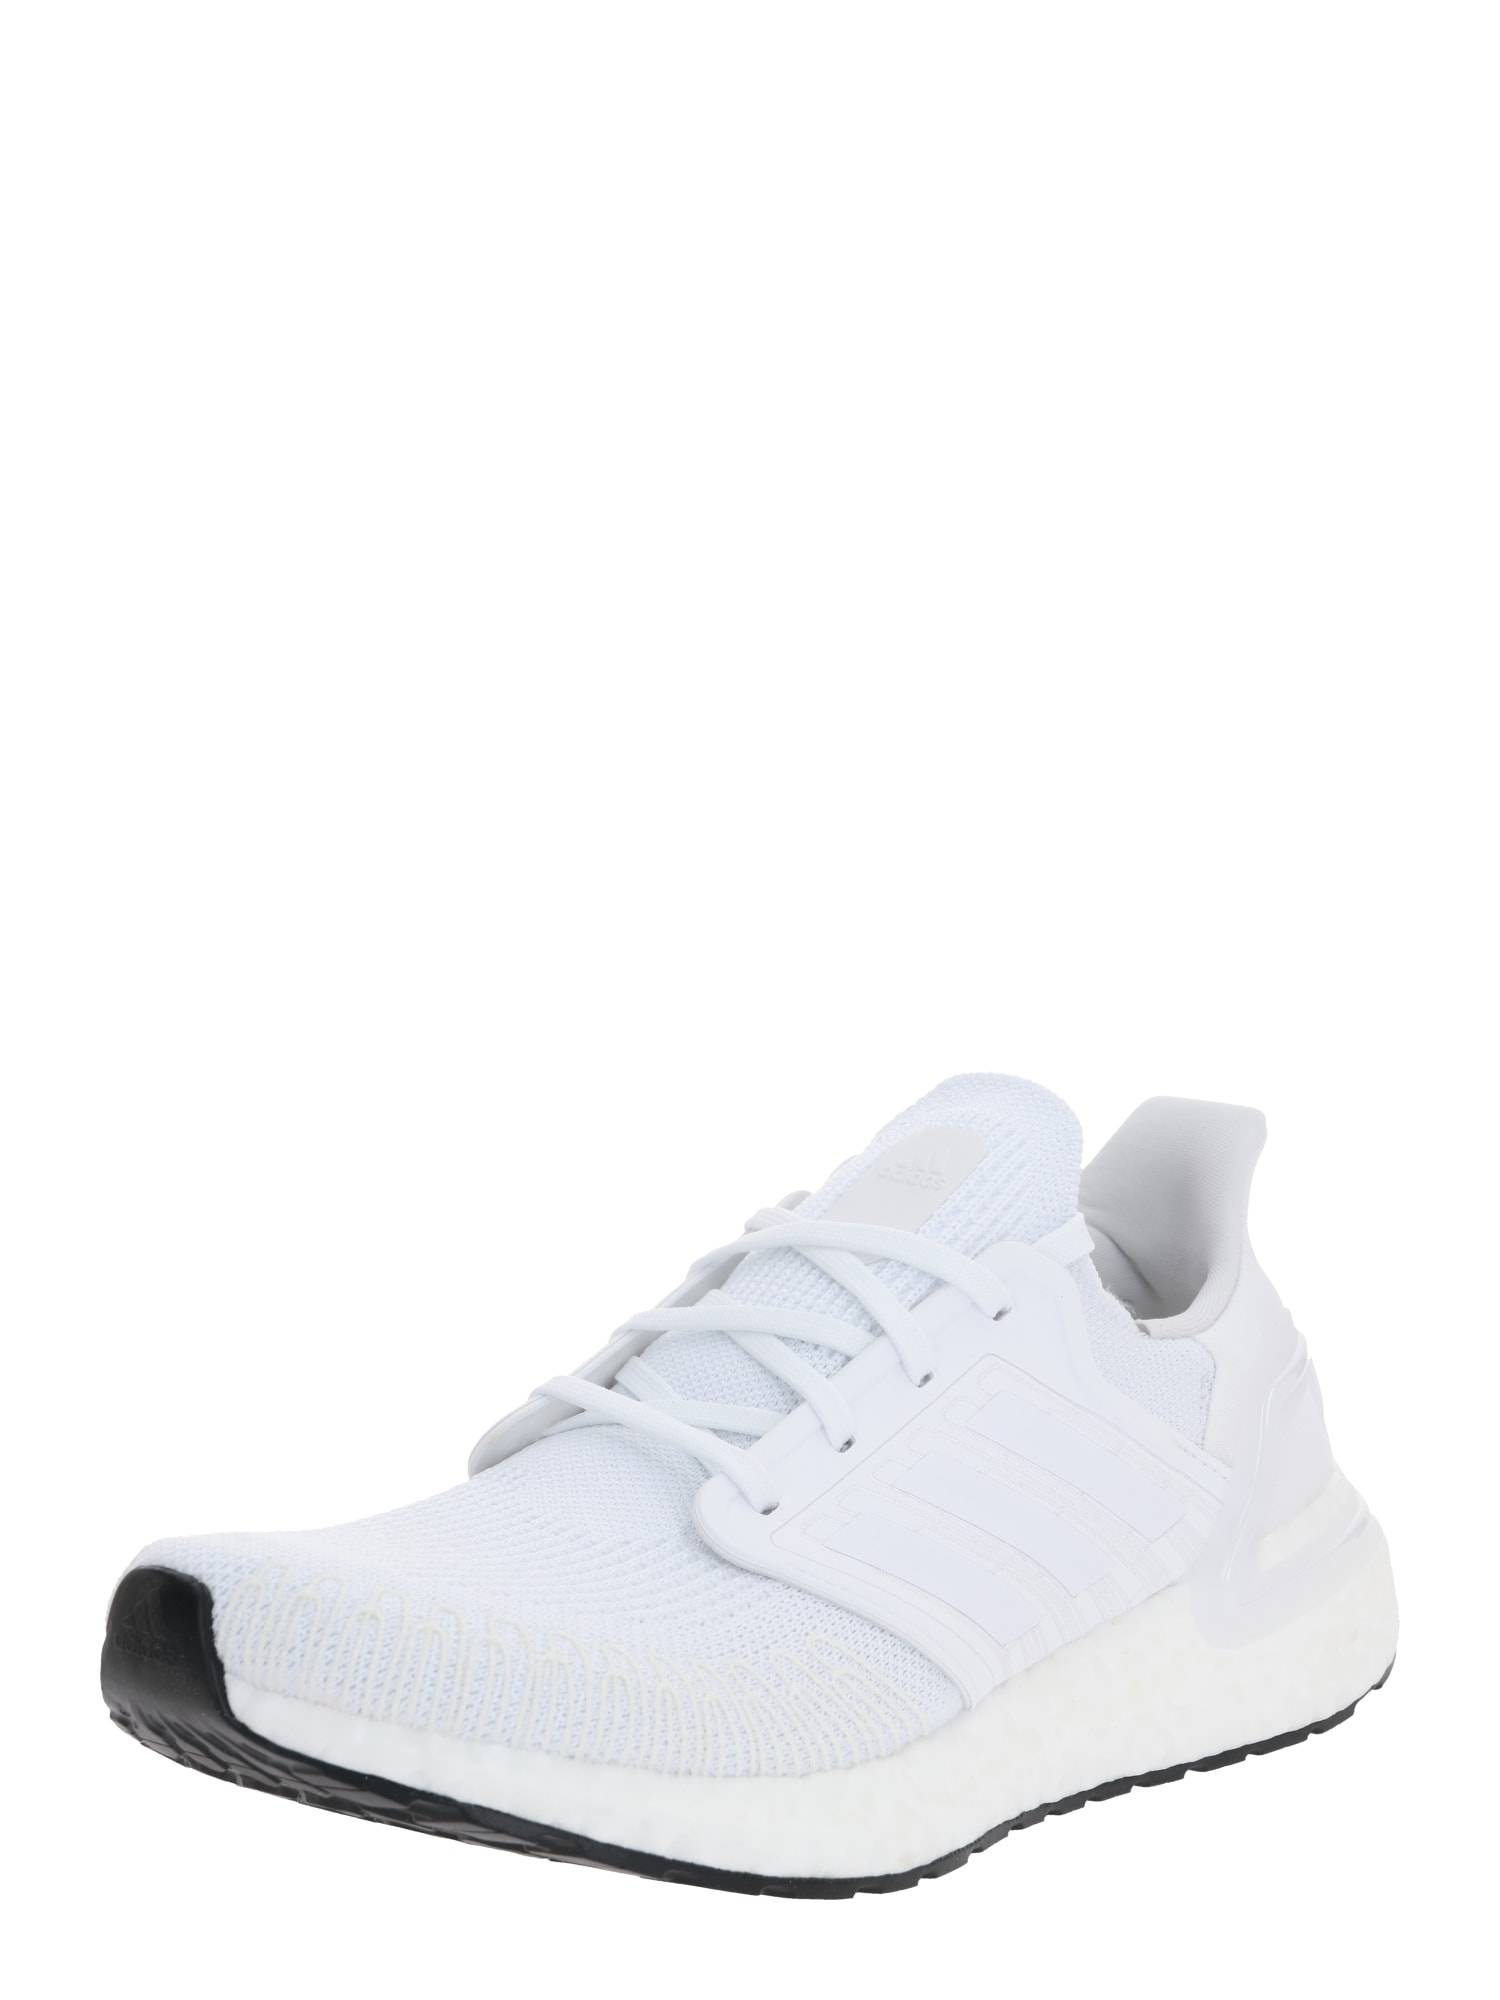 ADIDAS PERFORMANCE Chaussure de course 'Ultraboost 20'  - Blanc - Taille: 39-39.5 - male